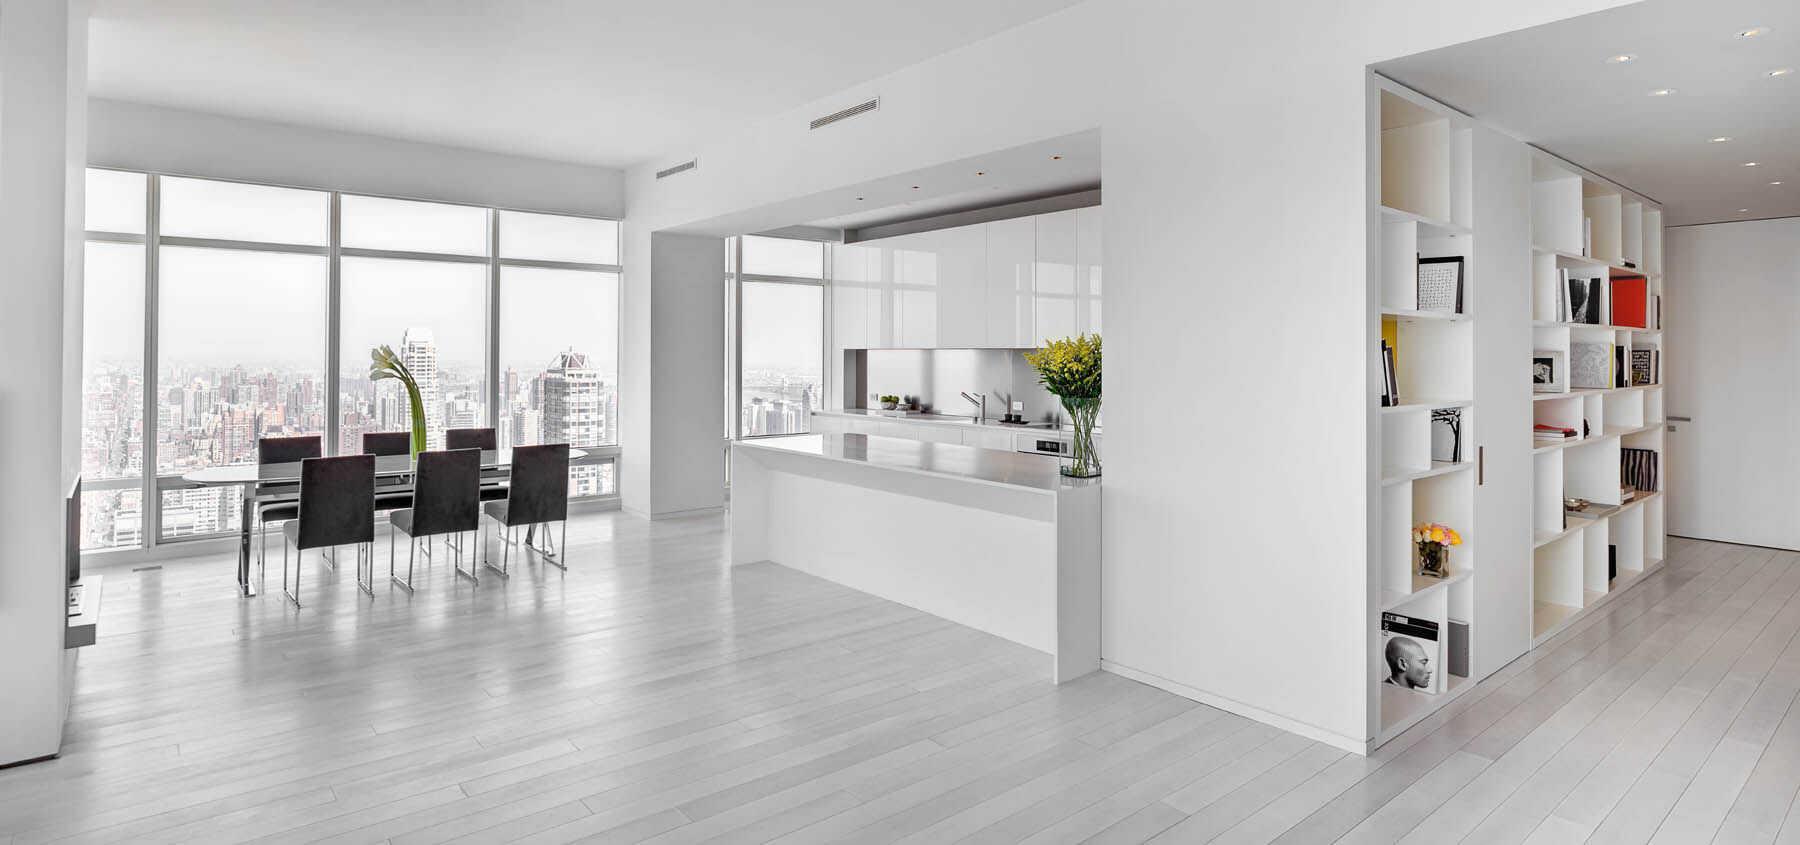 KITCHEN AND LIVING AREA with floor-to-ceiling bookshelf custom designed by Giusi Mastro